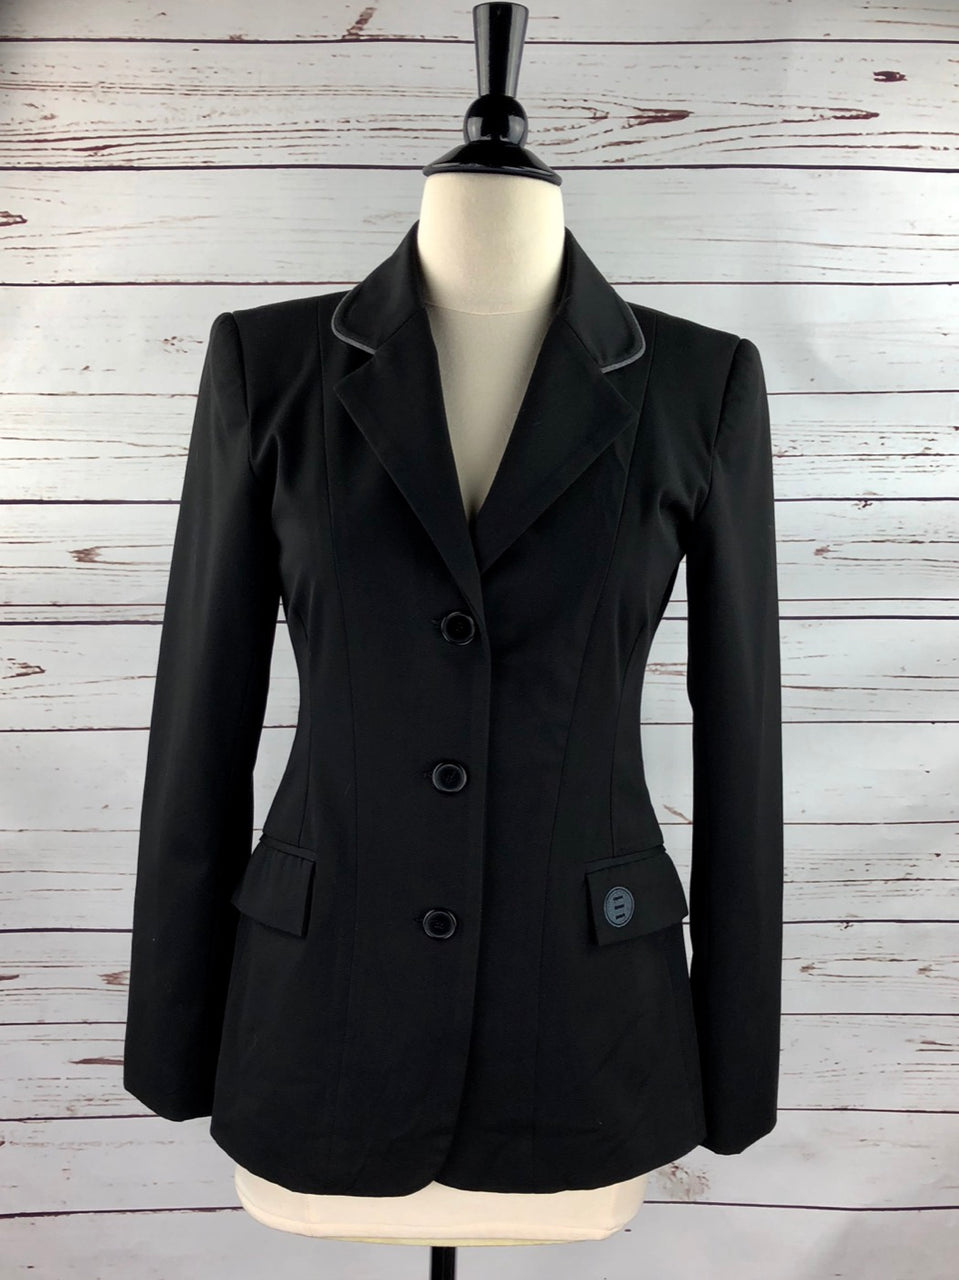 Renard et Cheval Hunt Coat in Black - Women's 8R (US 2R)